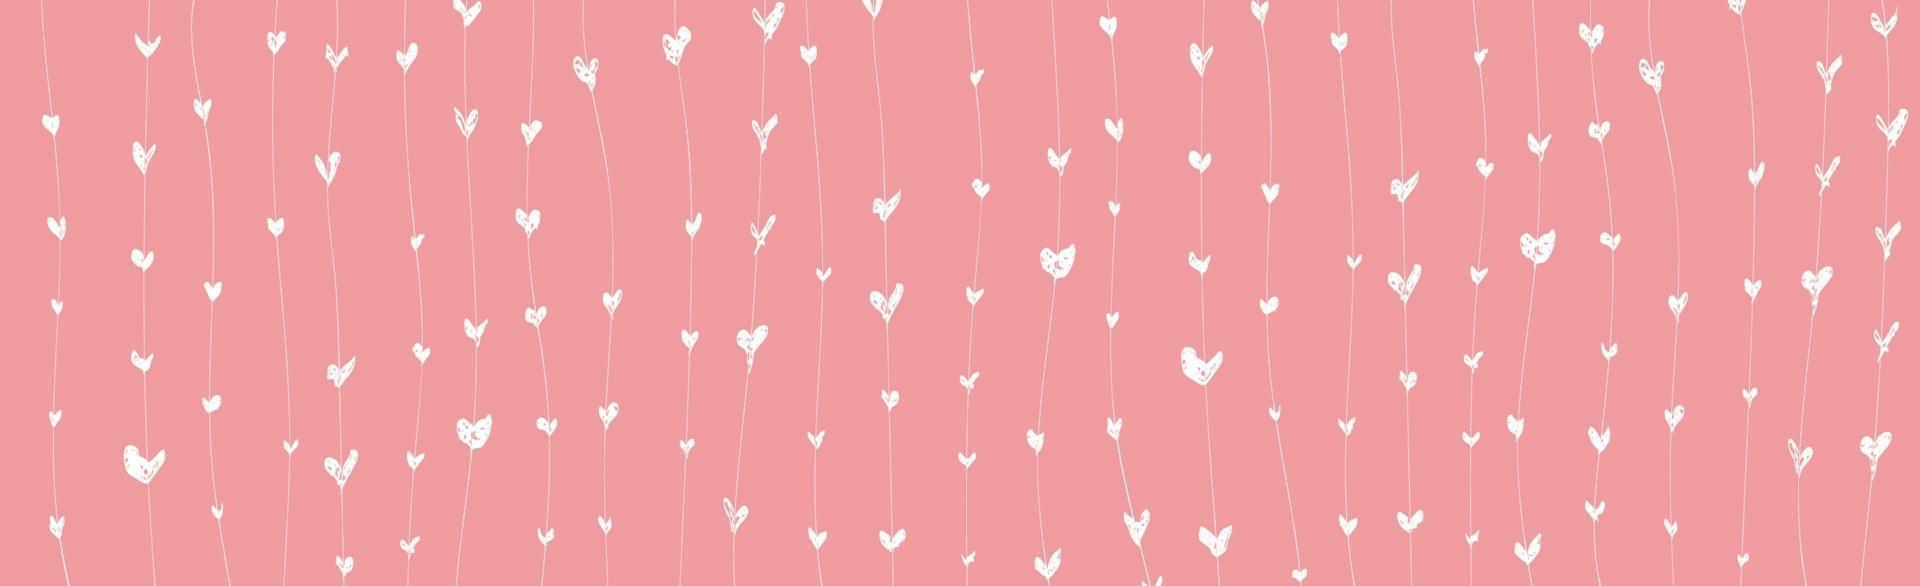 Abstract pink background with white painted hearts - Vector illustration